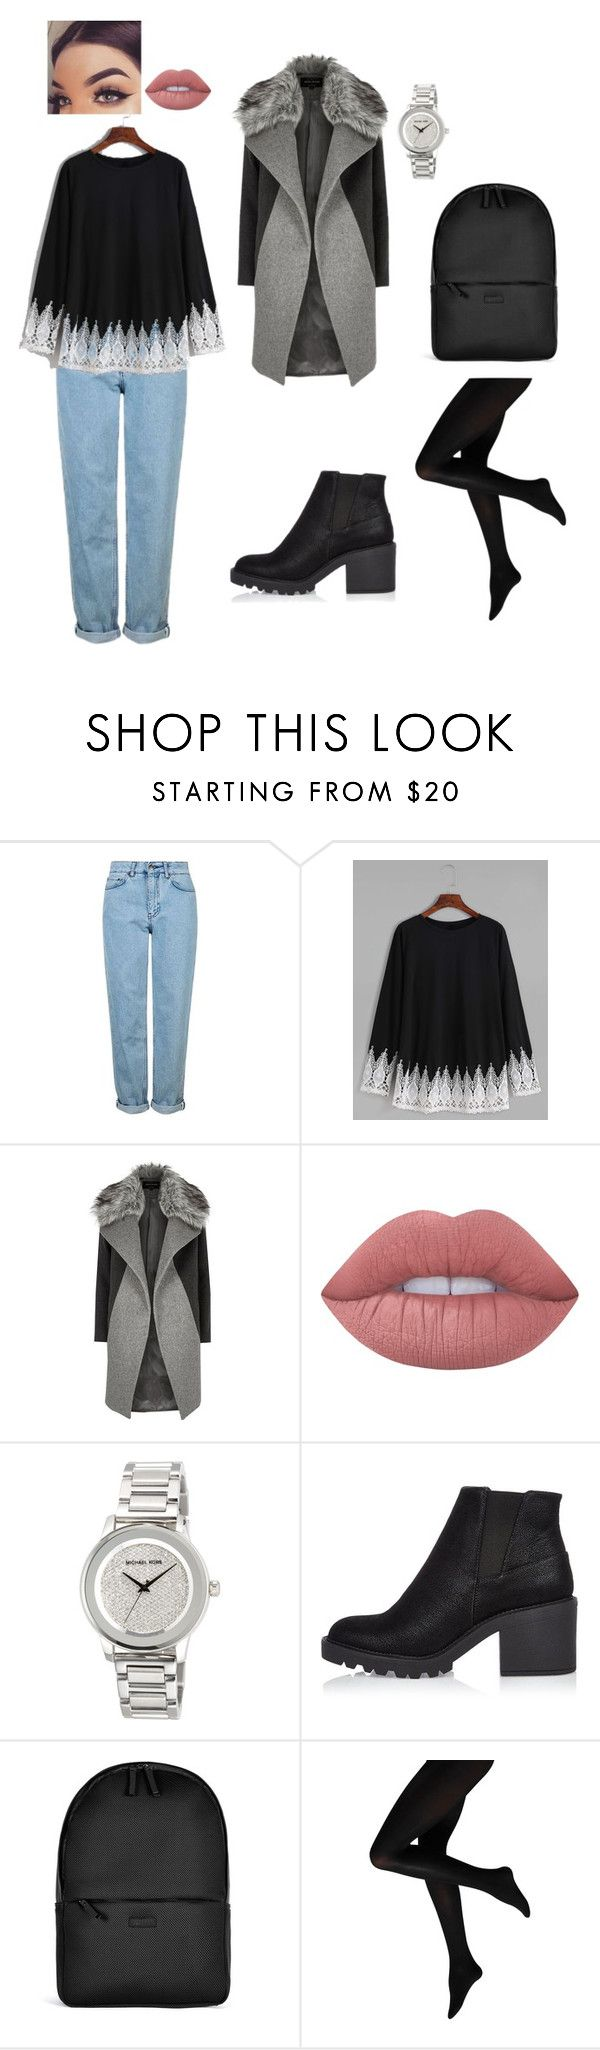 """""""winter"""" by emaabdi on Polyvore featuring Topshop, River Island, Lime Crime, MICHAEL Michael Kors and Rains"""